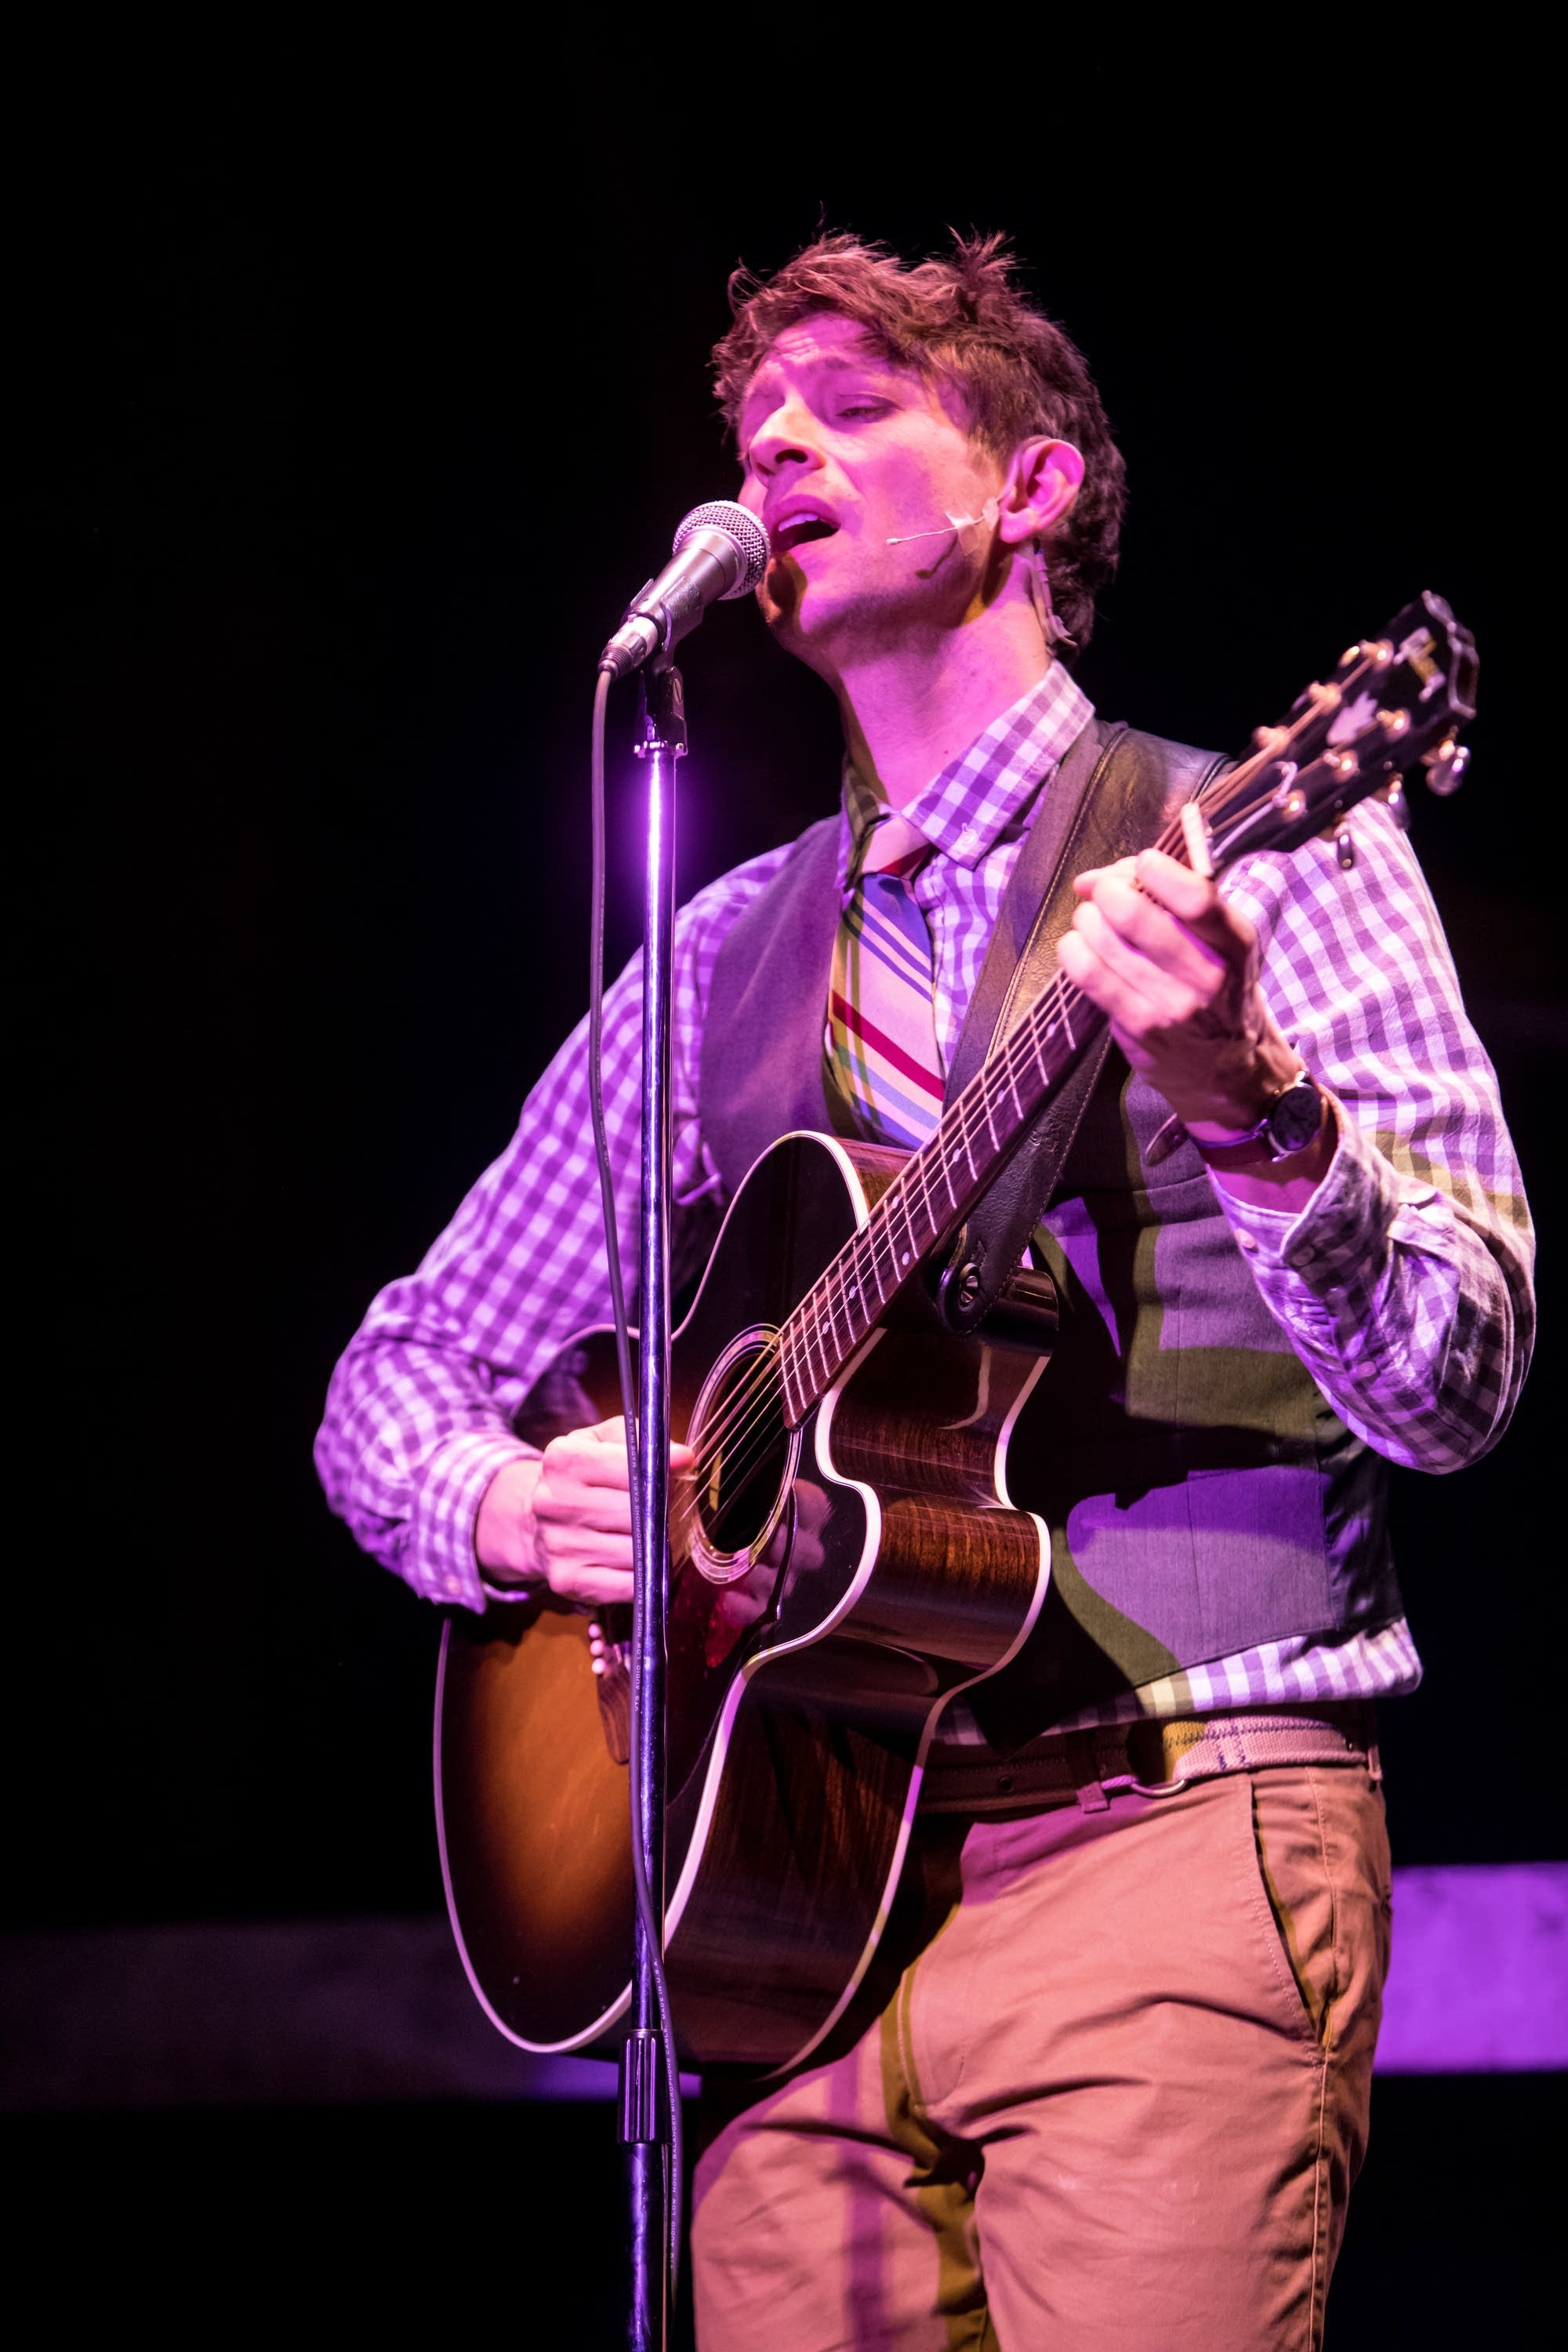 Twin Cities musician Chris Koza